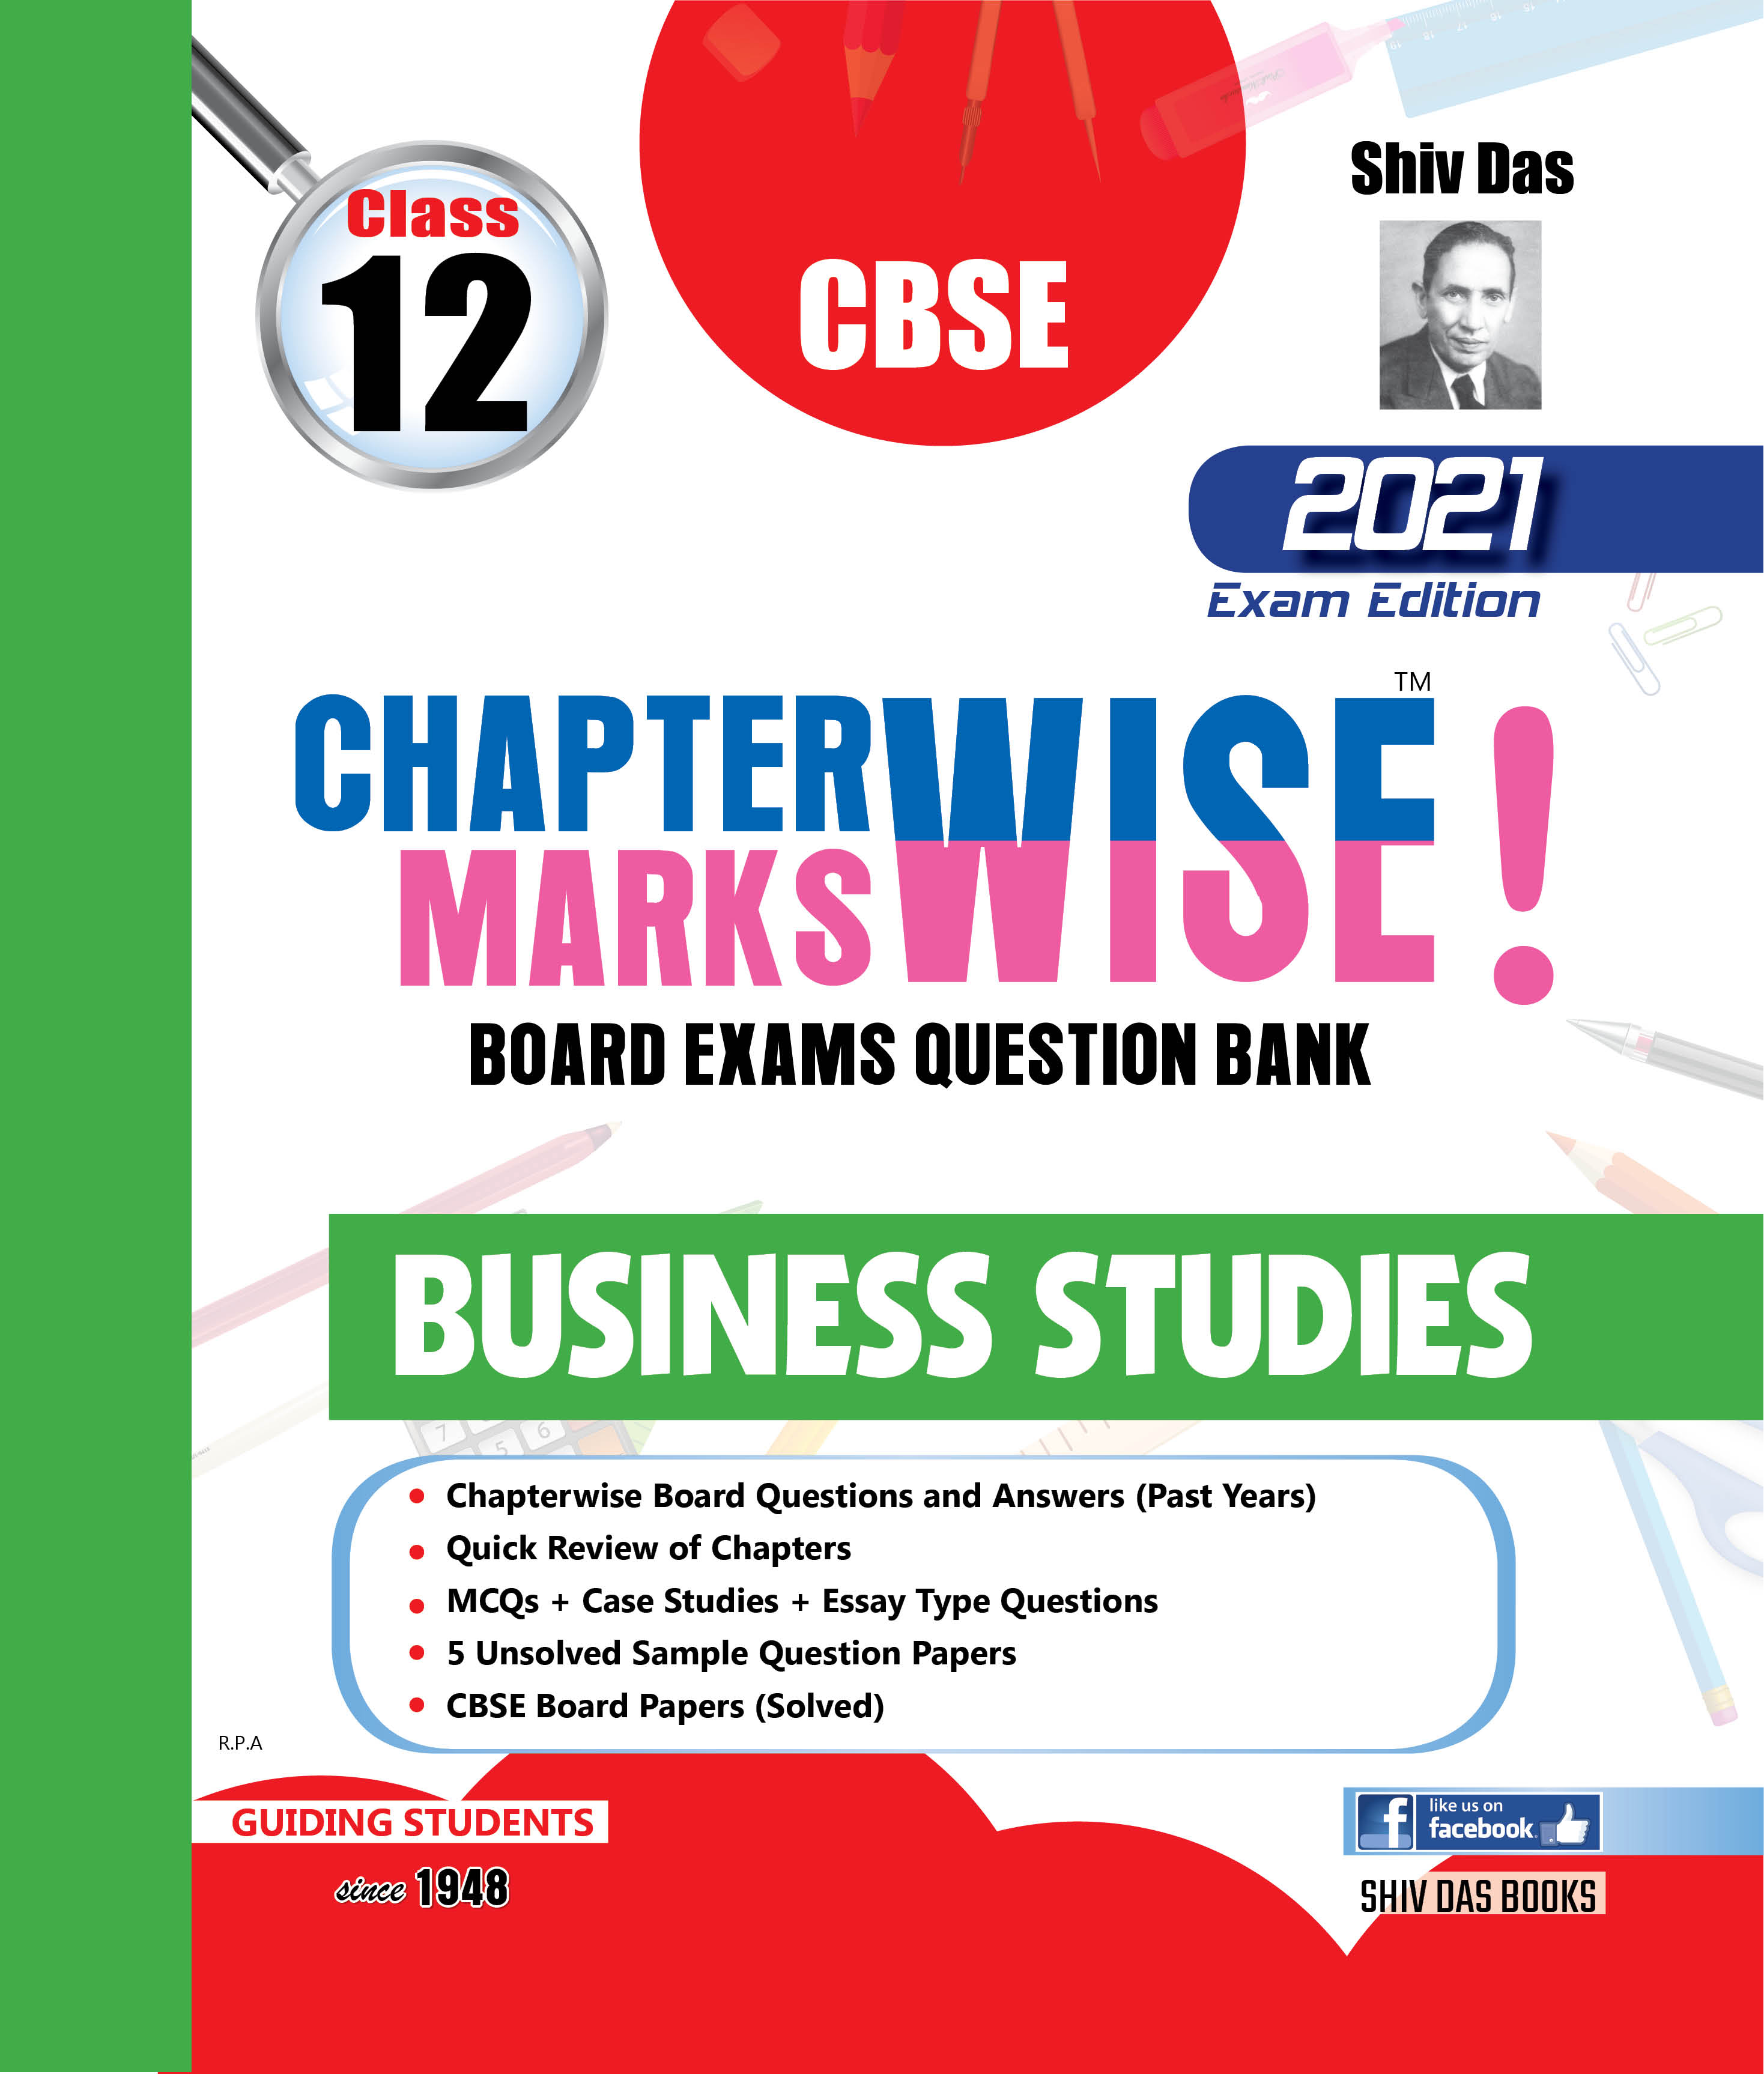 CBSE Chapterwise and Markswise Board Exam Question Bank By SHIVDAS for Class 12 Business Studies (2021 Board Exam Edition)